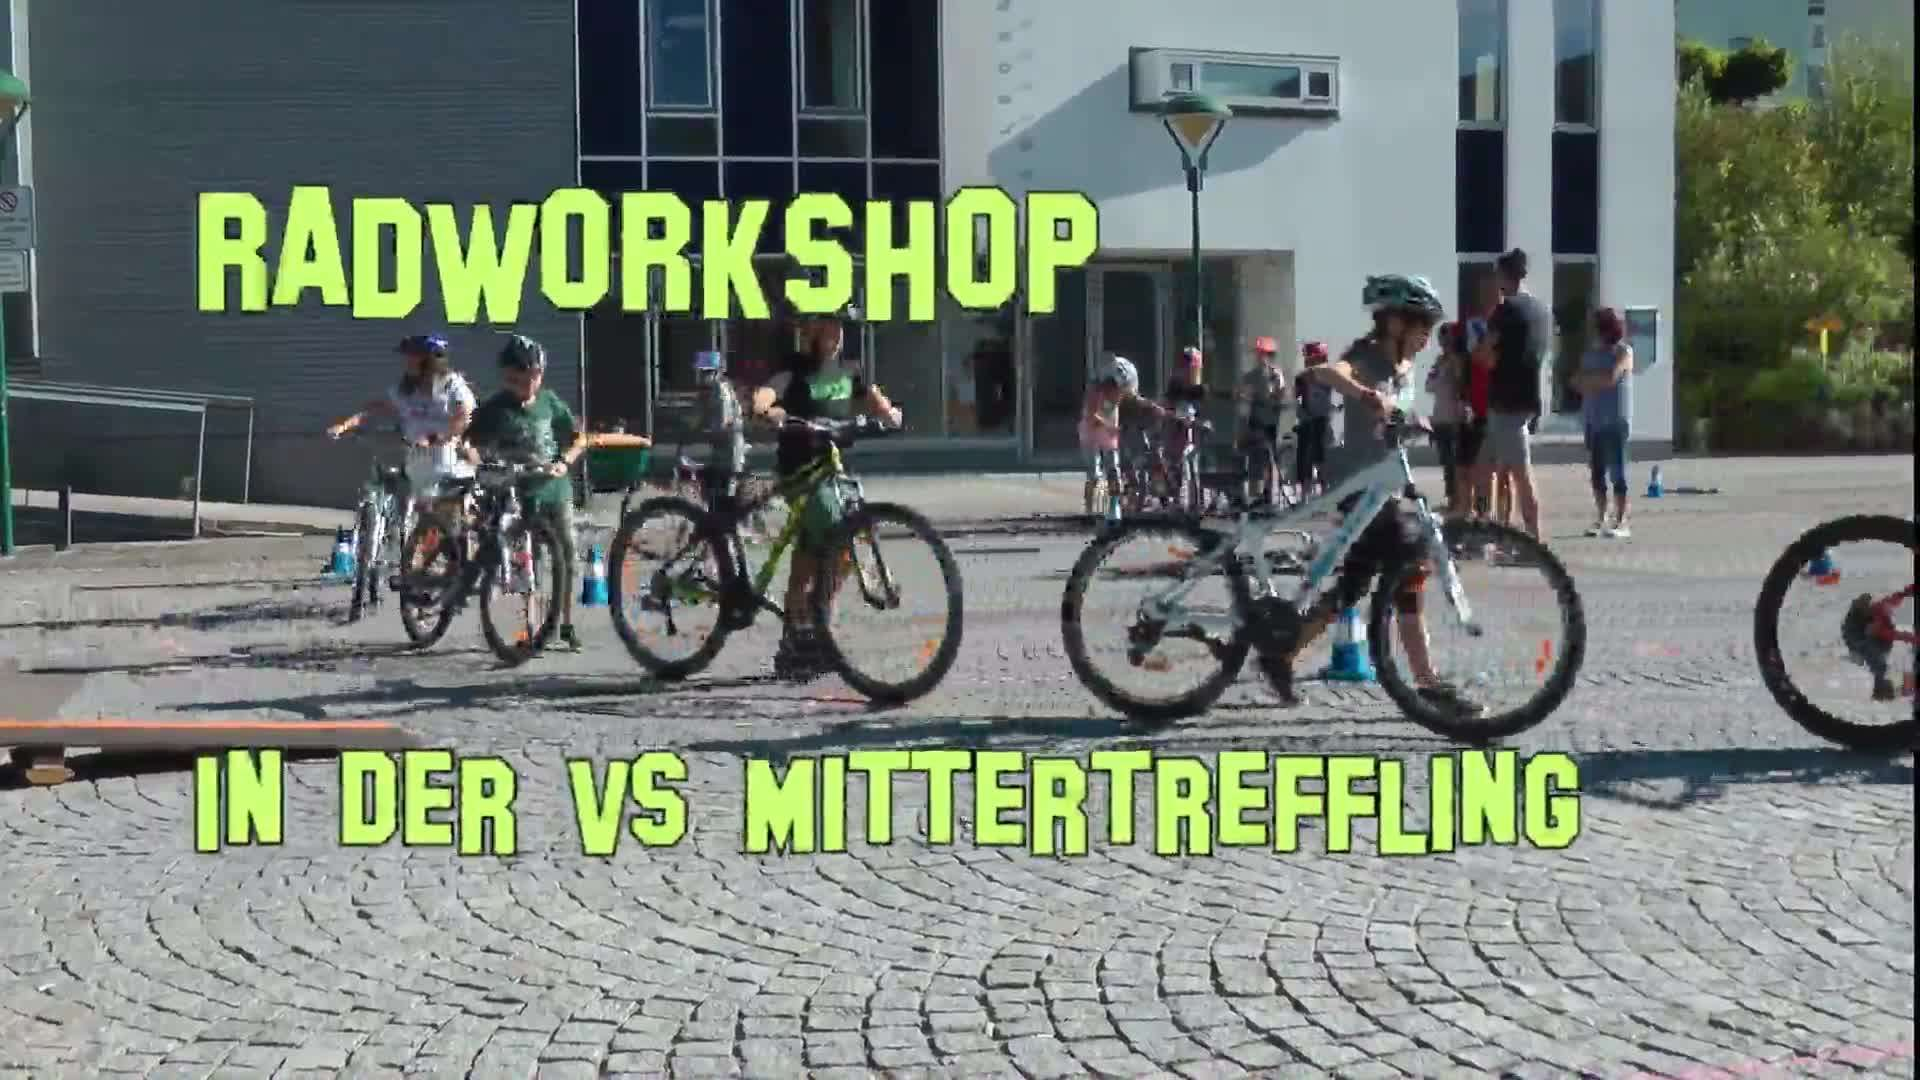 Radworkshop in der VS Mittertreffling